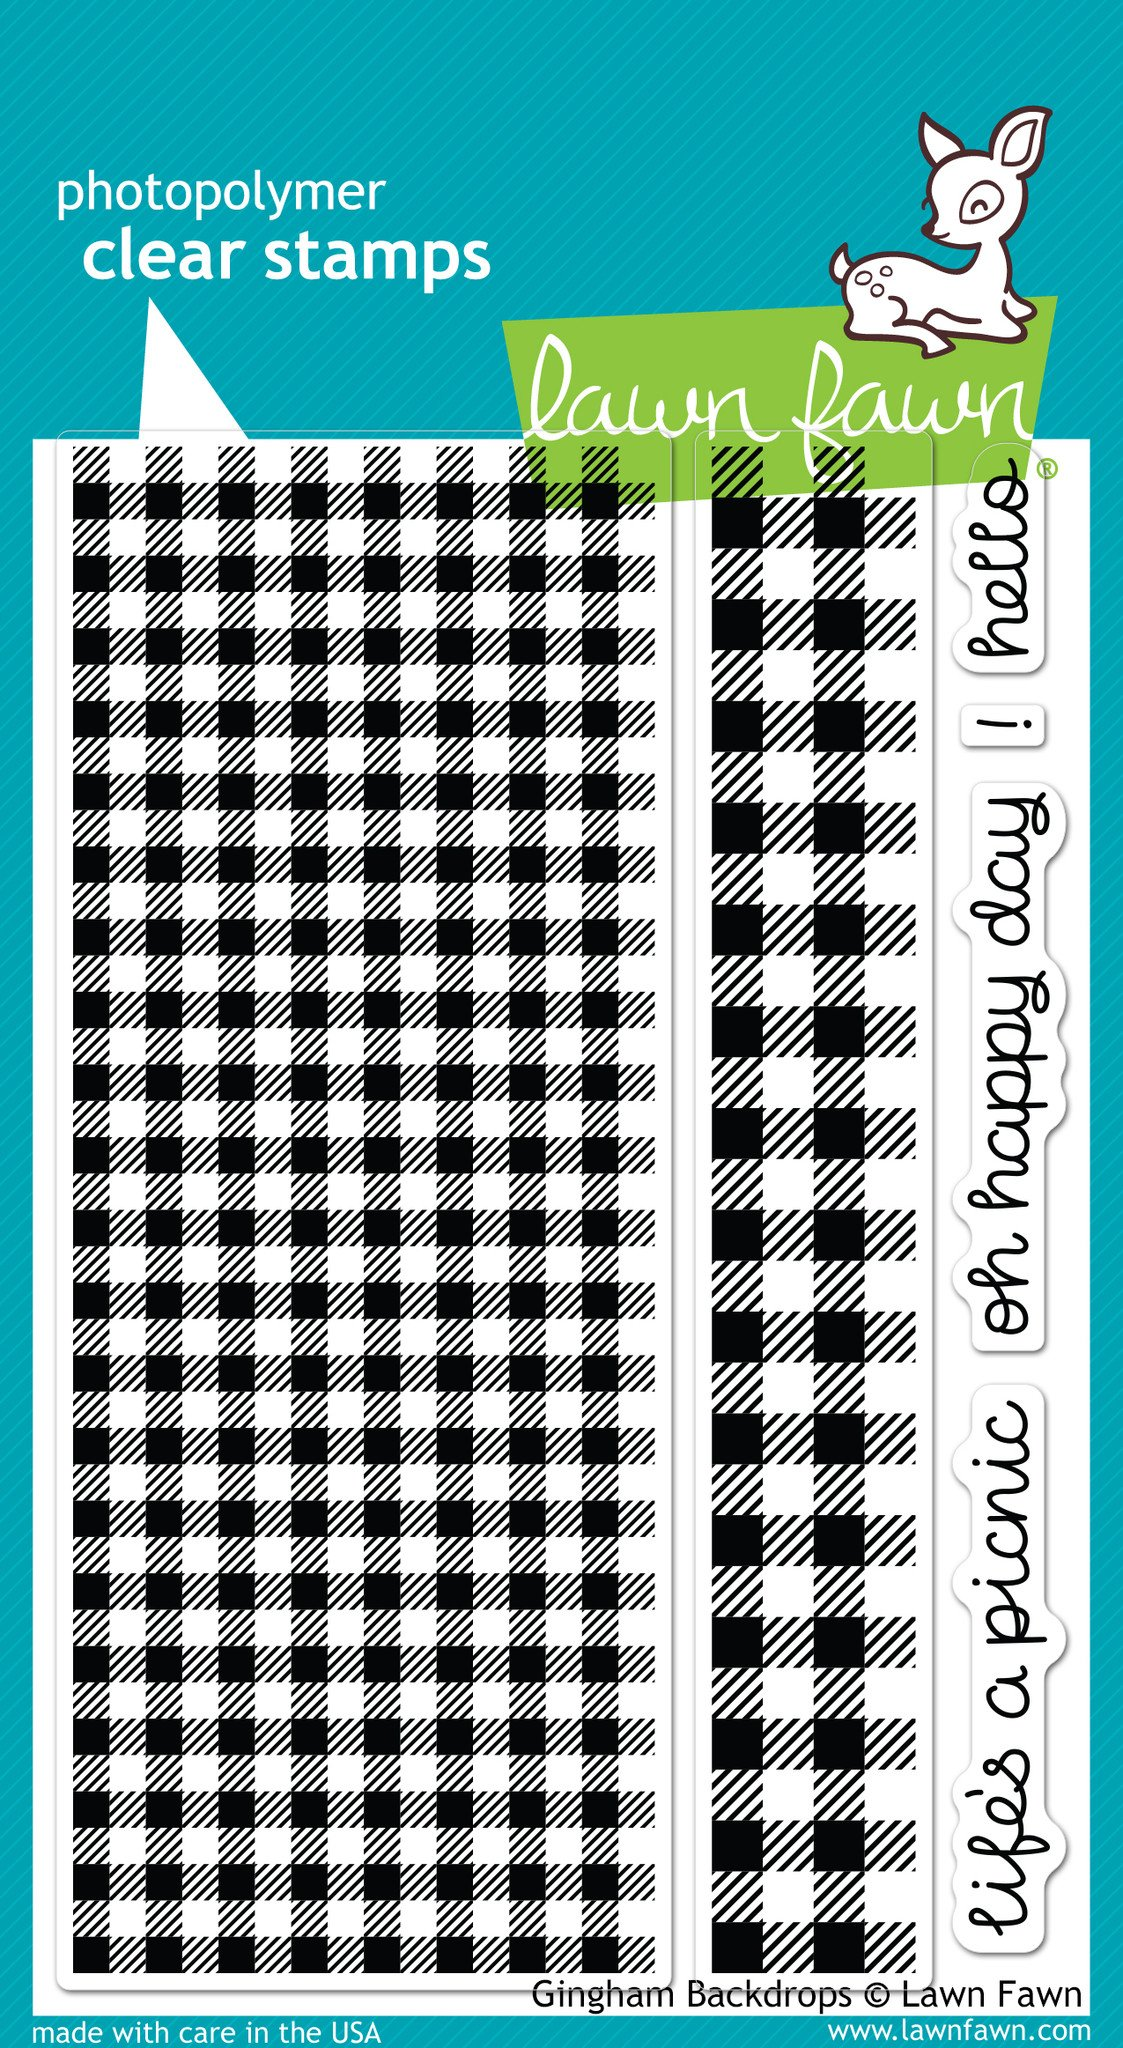 gingham backdrops Lawn Fawn 1123x2048